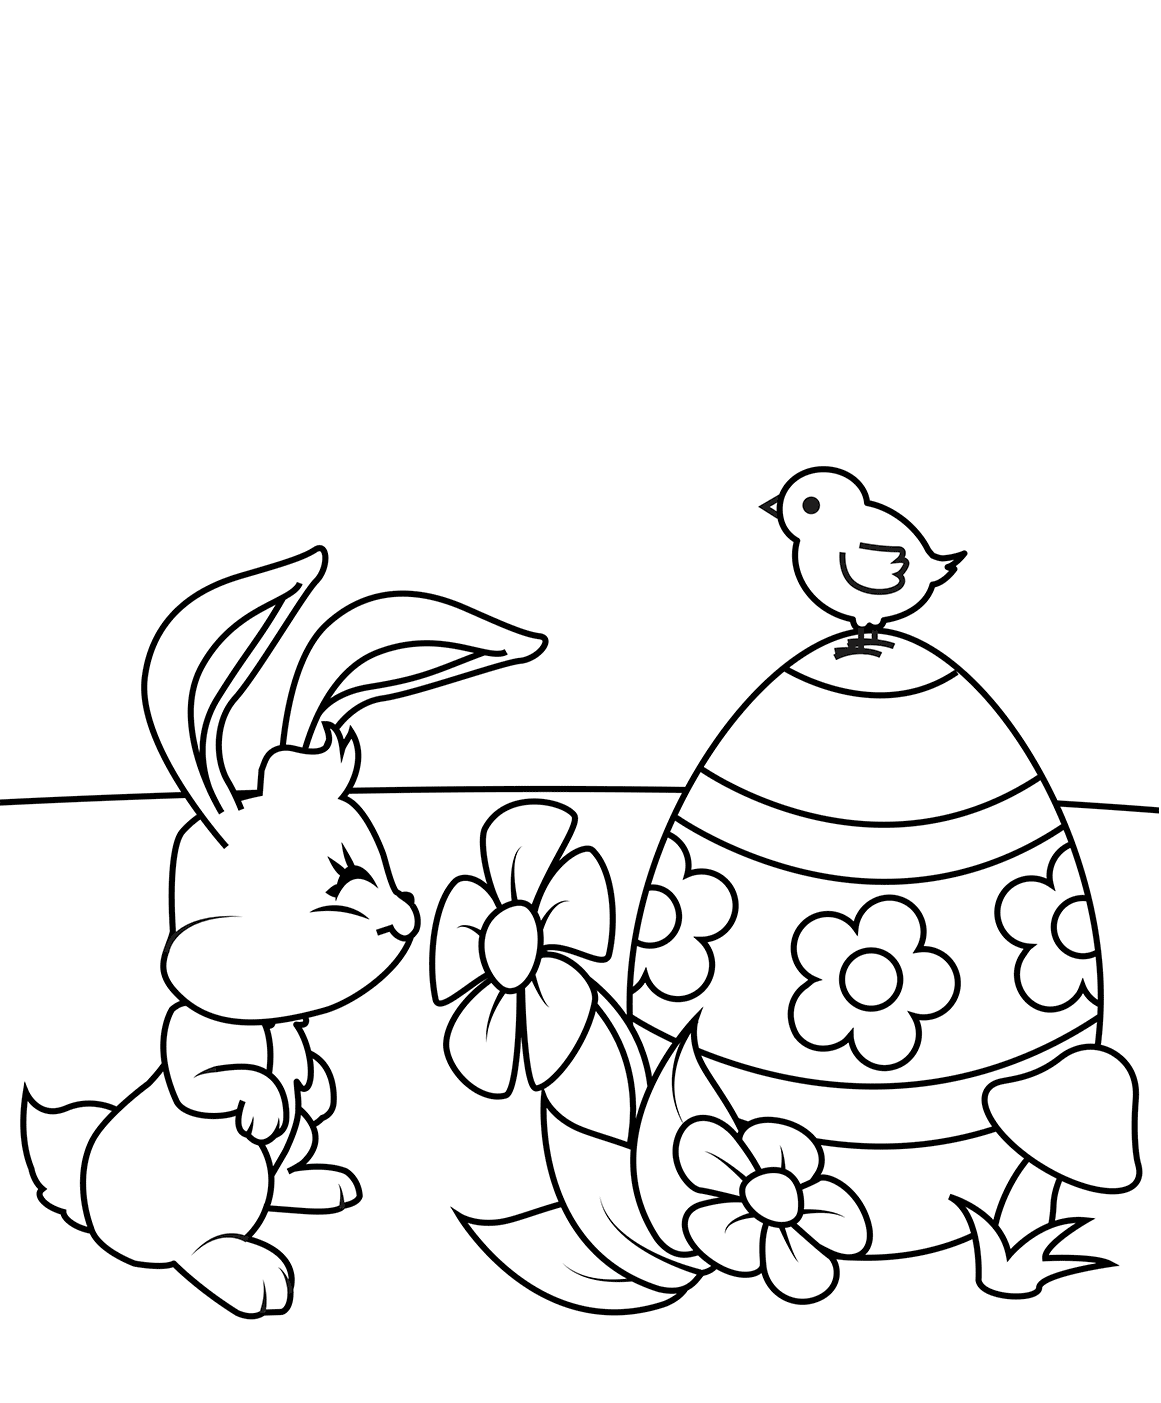 easter chick colouring happy easter chicks cartoon coloring page chick colouring easter